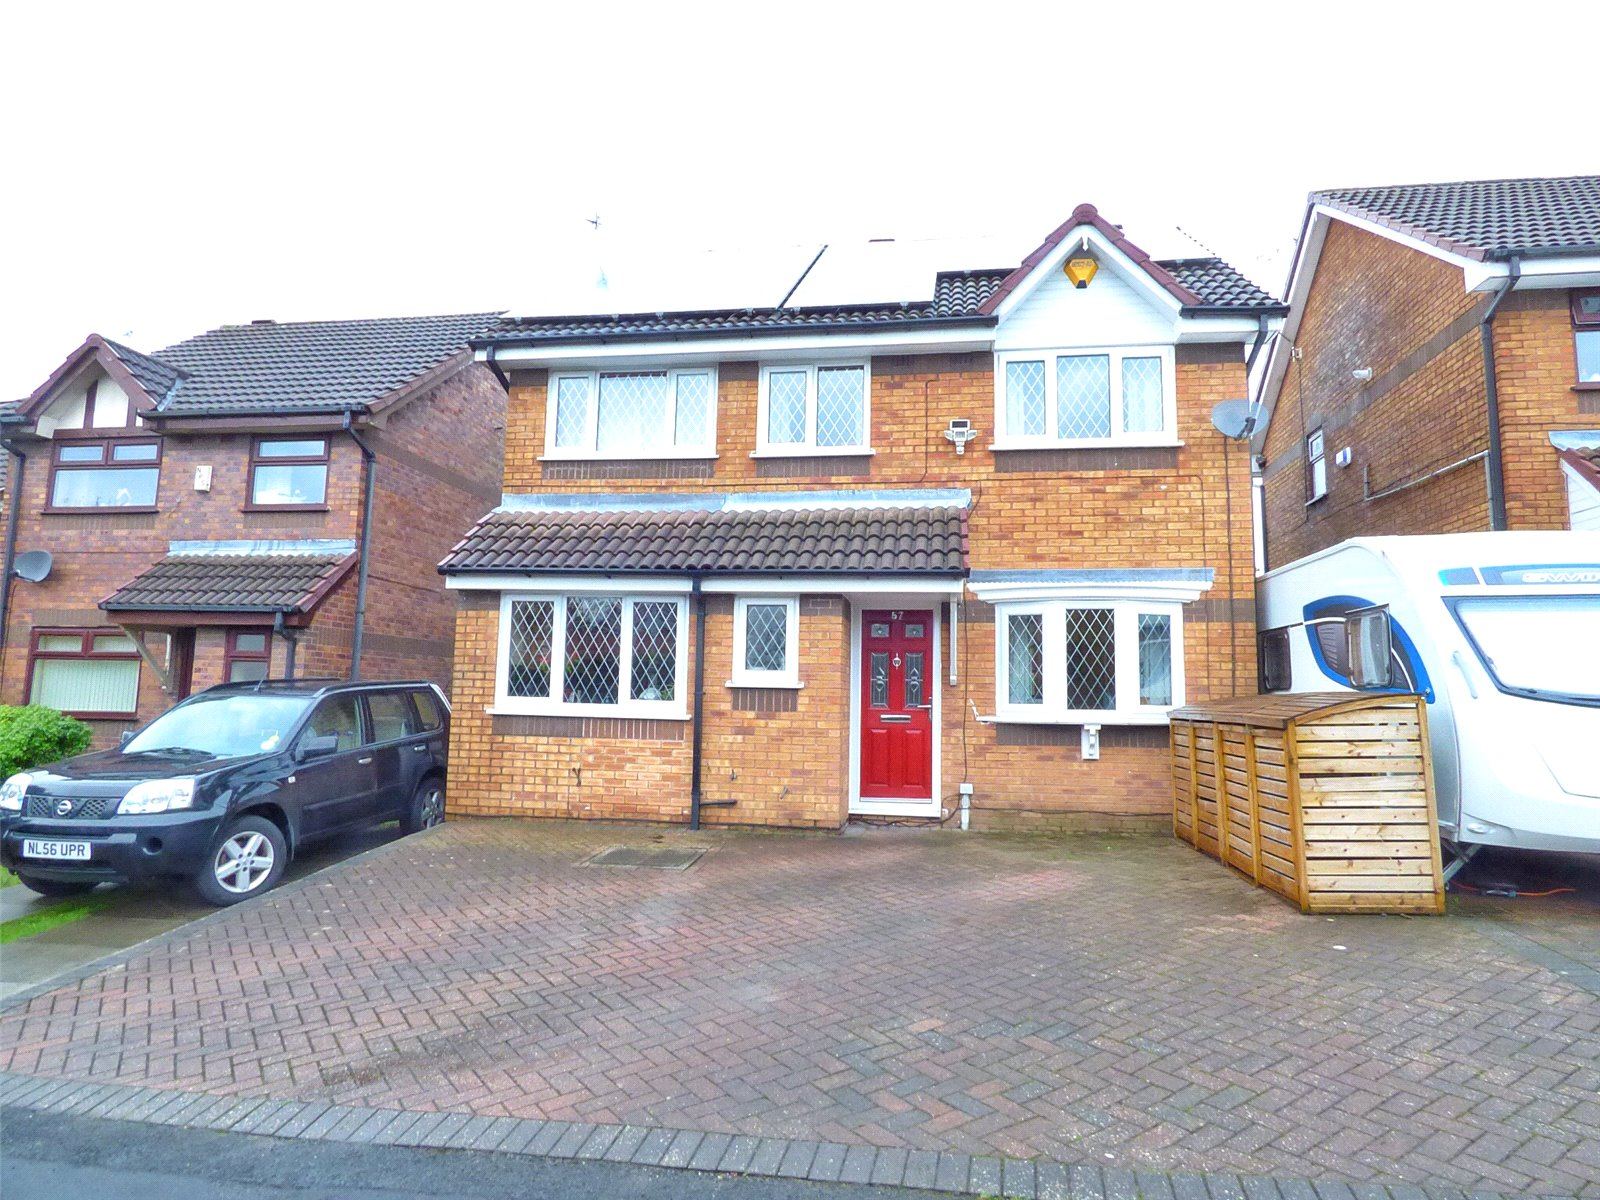 4 Bedrooms Detached House for sale in Bleasdale Street, Royton, Oldham, OL2